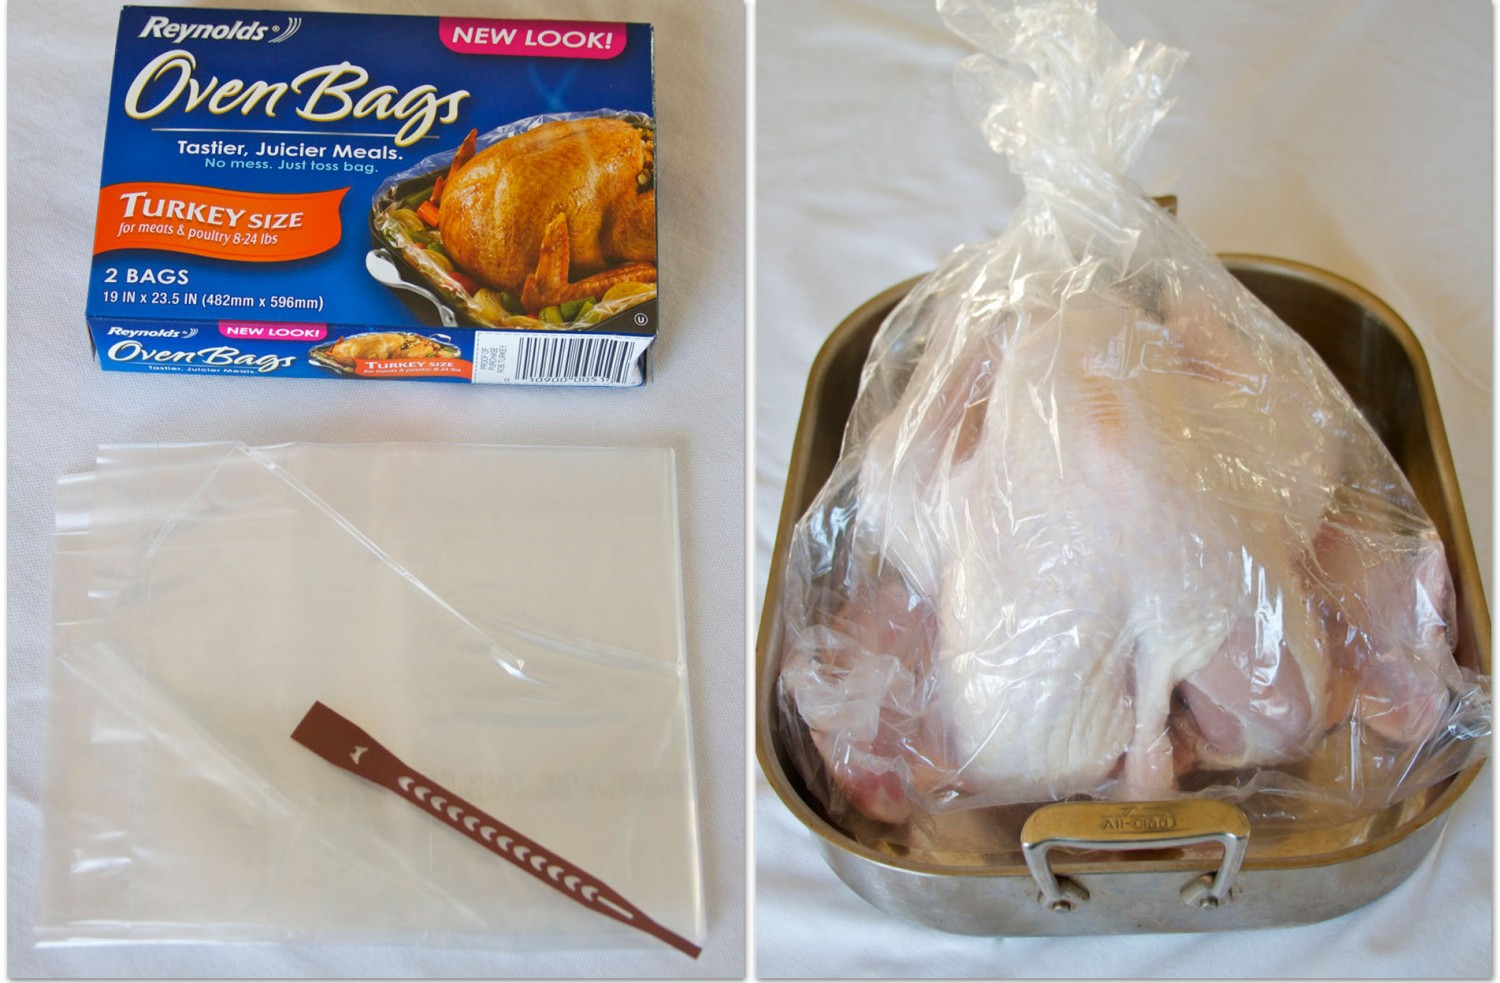 Bags And Turkey In Bag